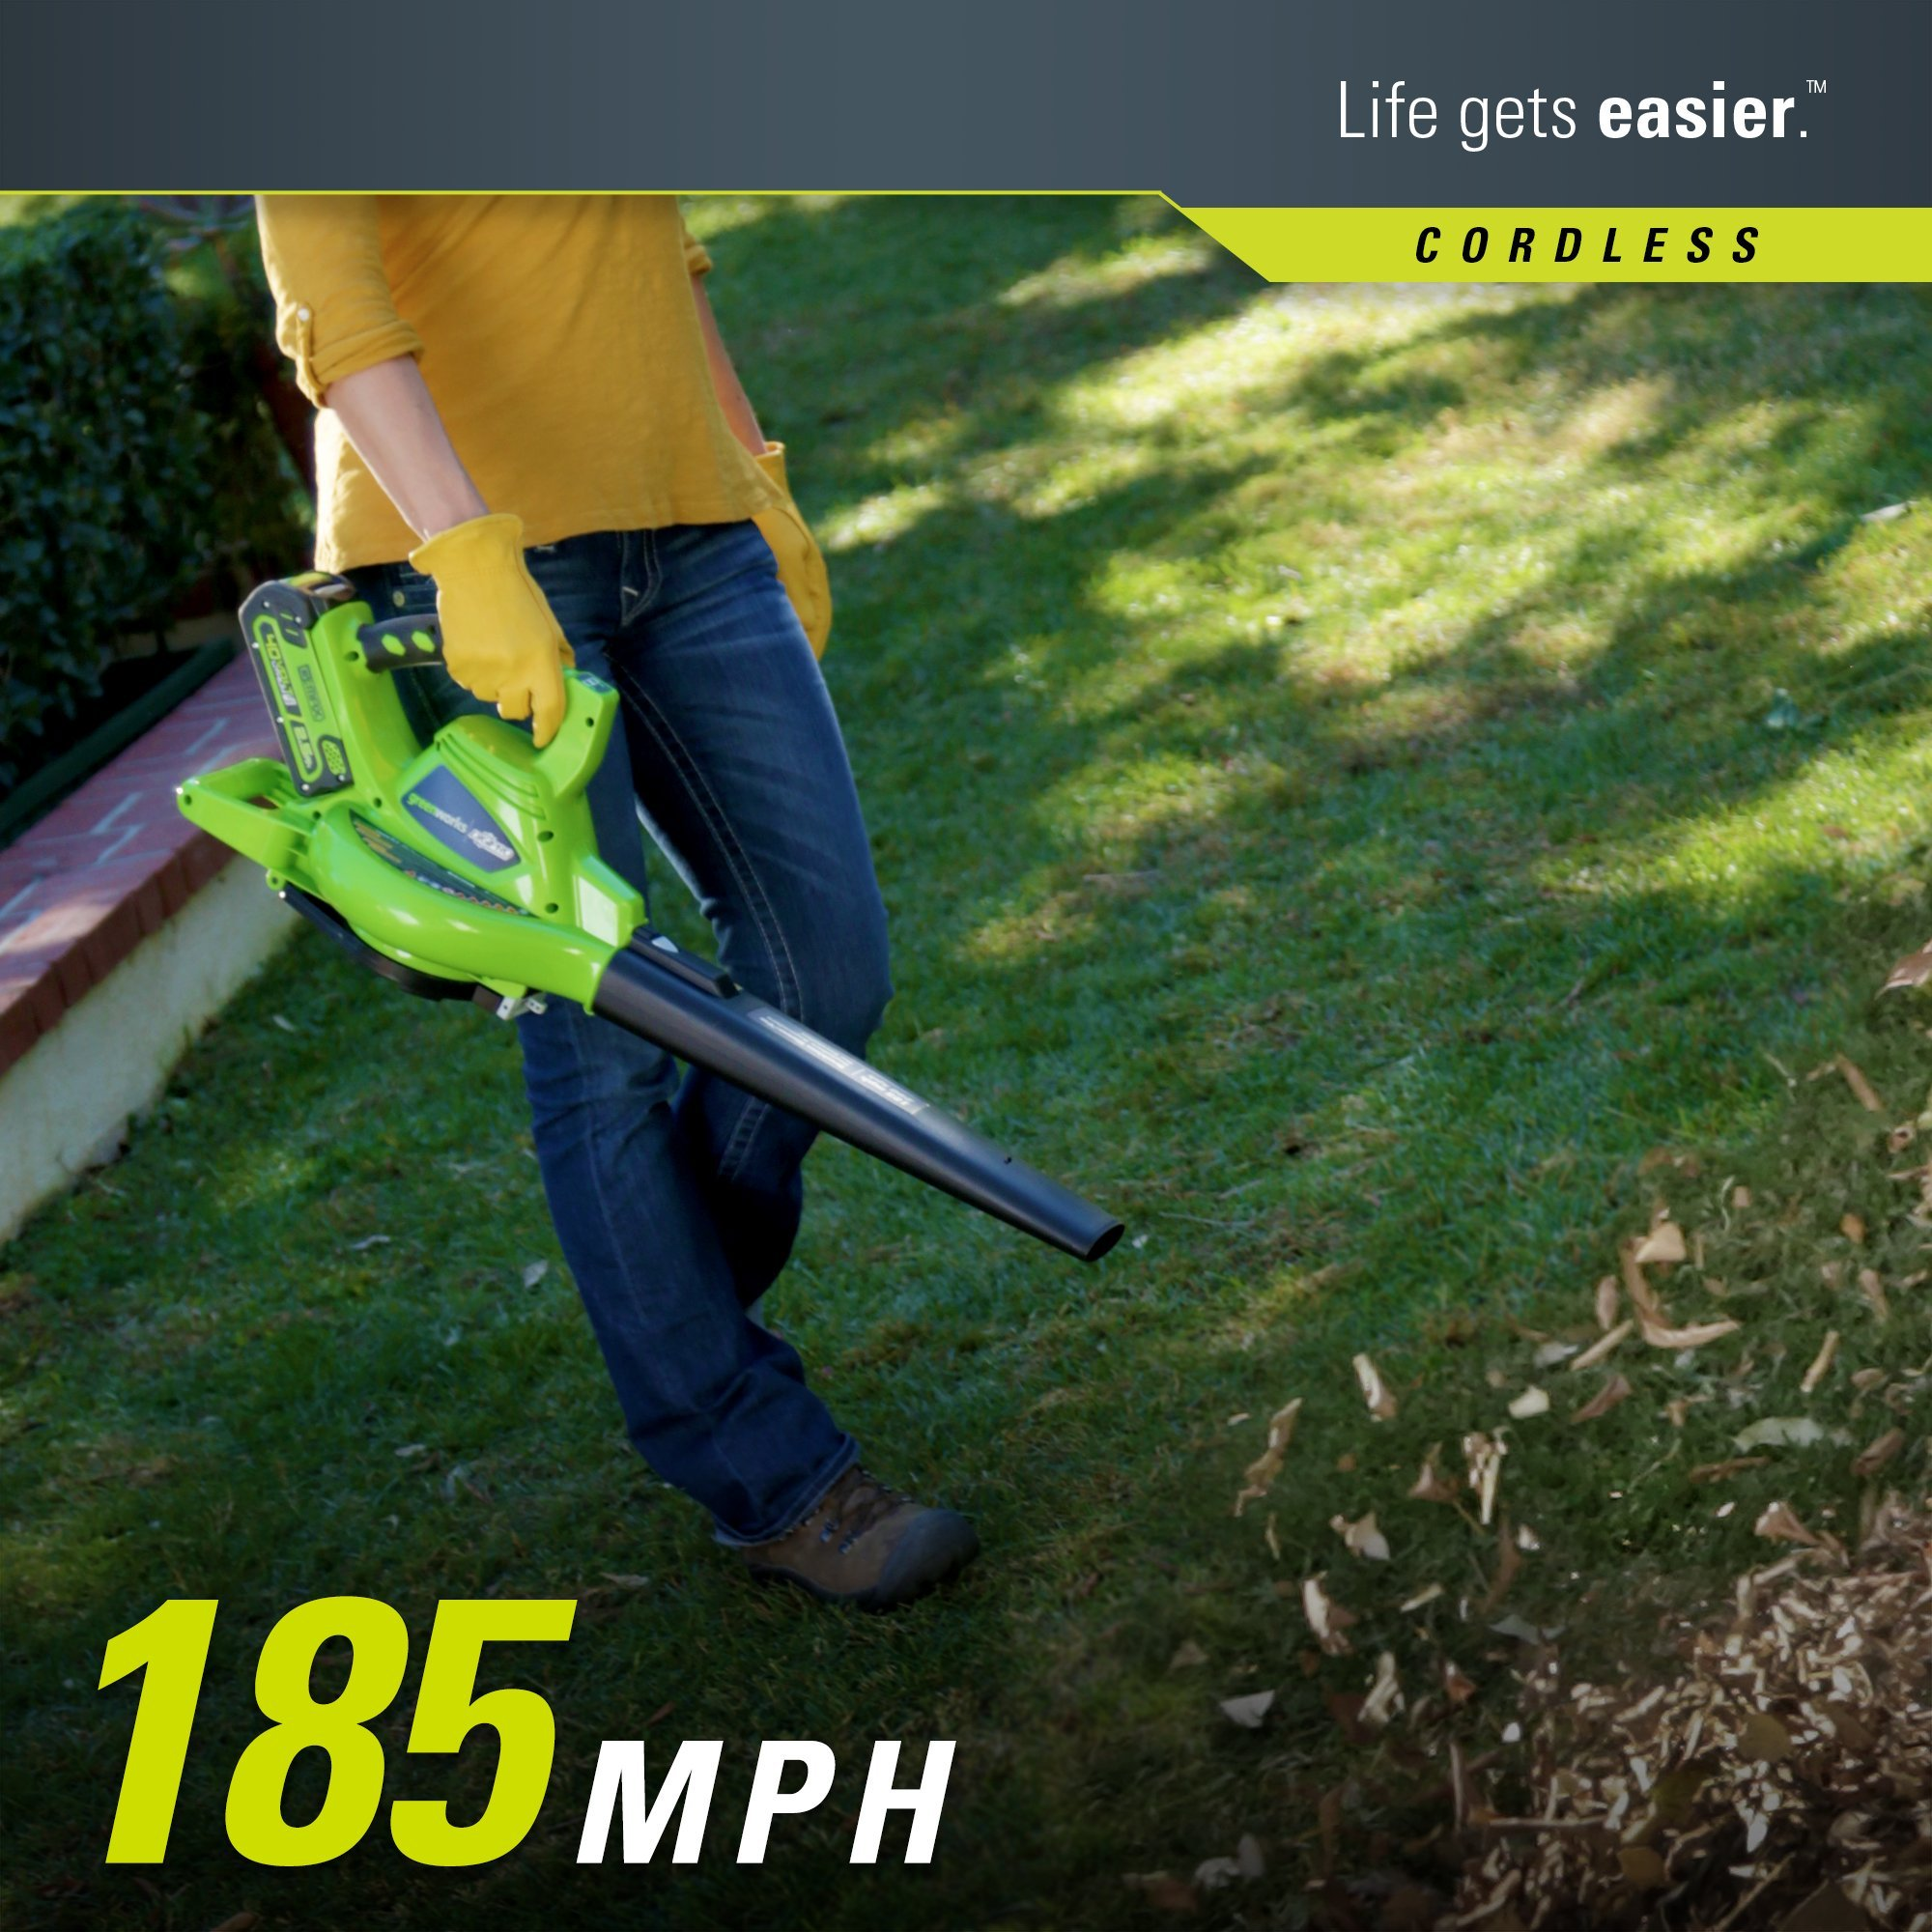 Greenworks 40V 185 MPH Variable Speed Cordless Blower Vacuum, 4.0 AH Battery Included 24322 by Greenworks (Image #4)